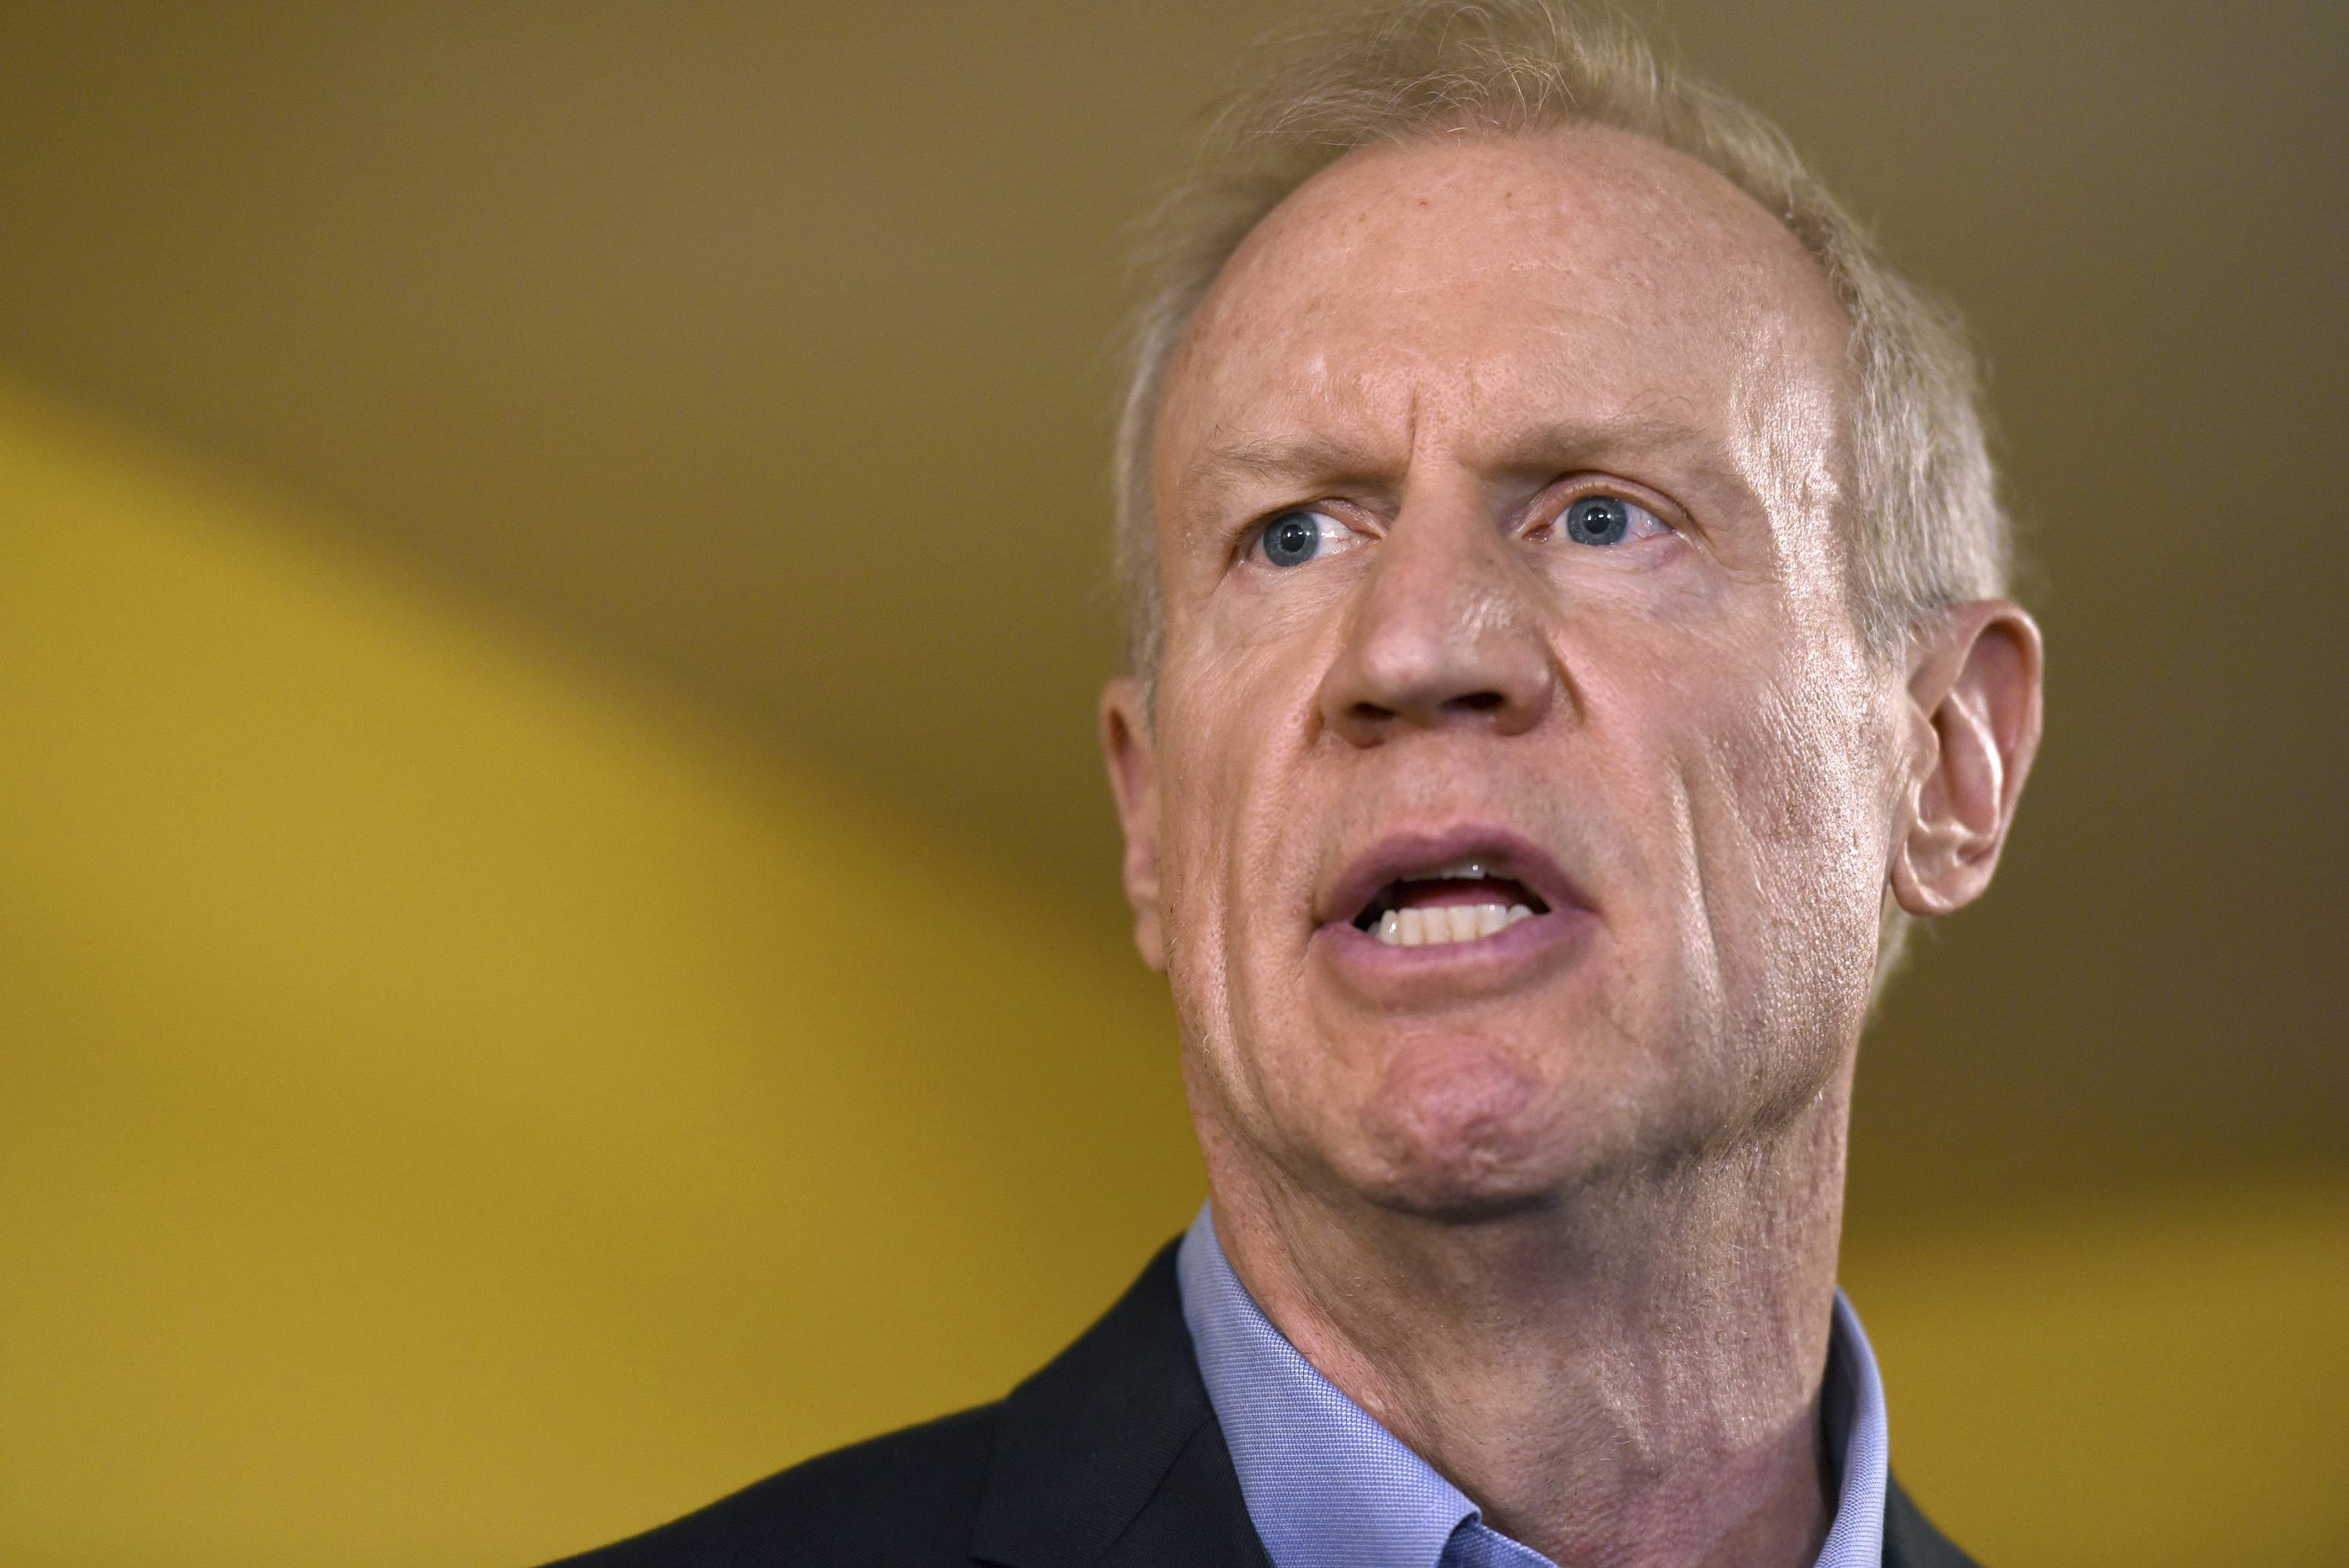 Gov. Bruce Rauner is expected to introduce Vice President Mike Pence at his appearance in Rosemont on Friday.